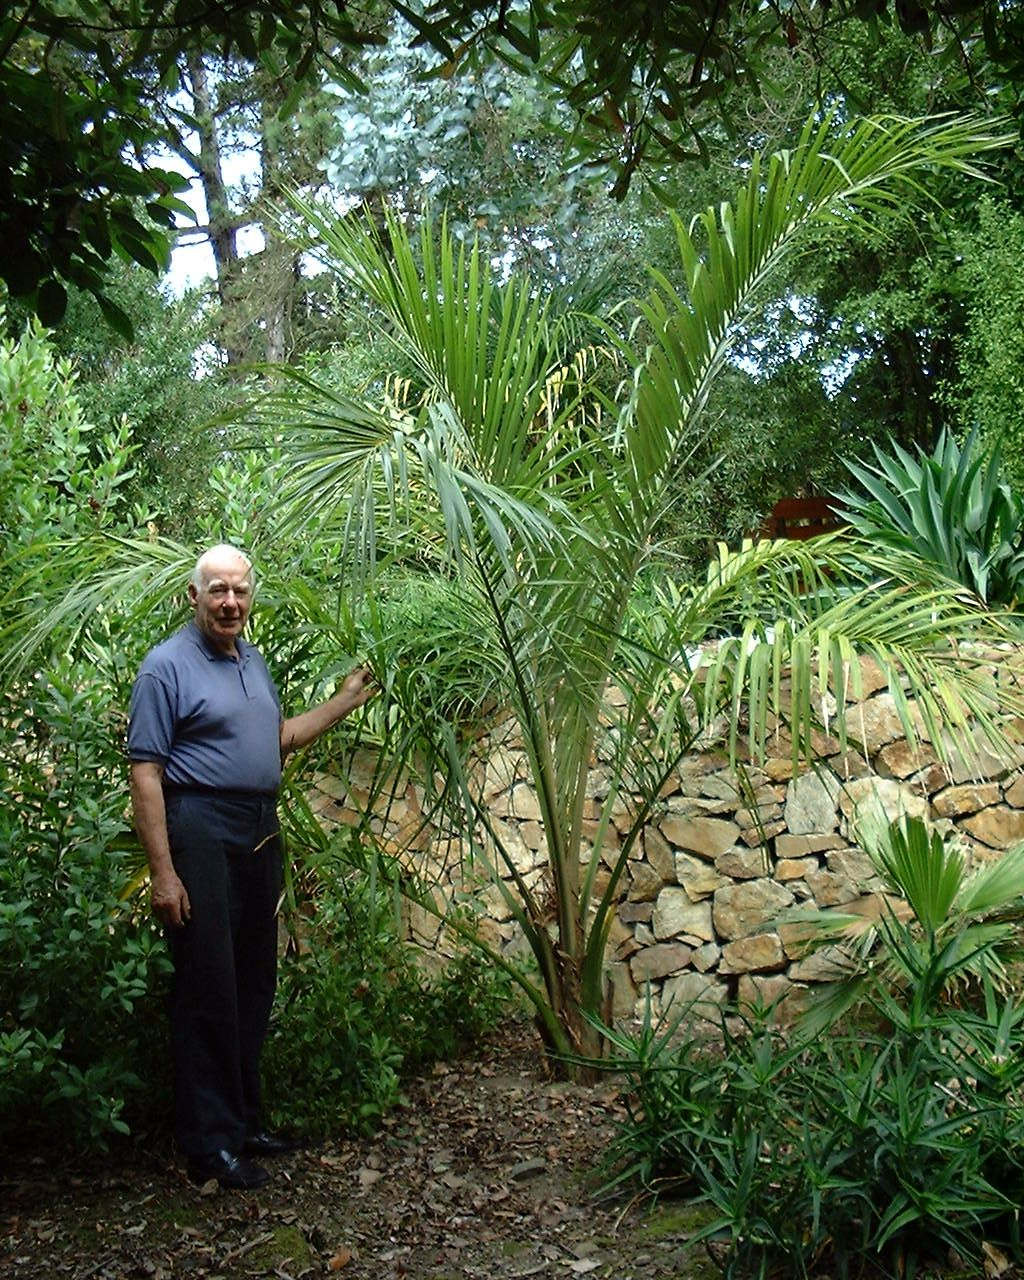 David Robinson in his garden with Juania australis